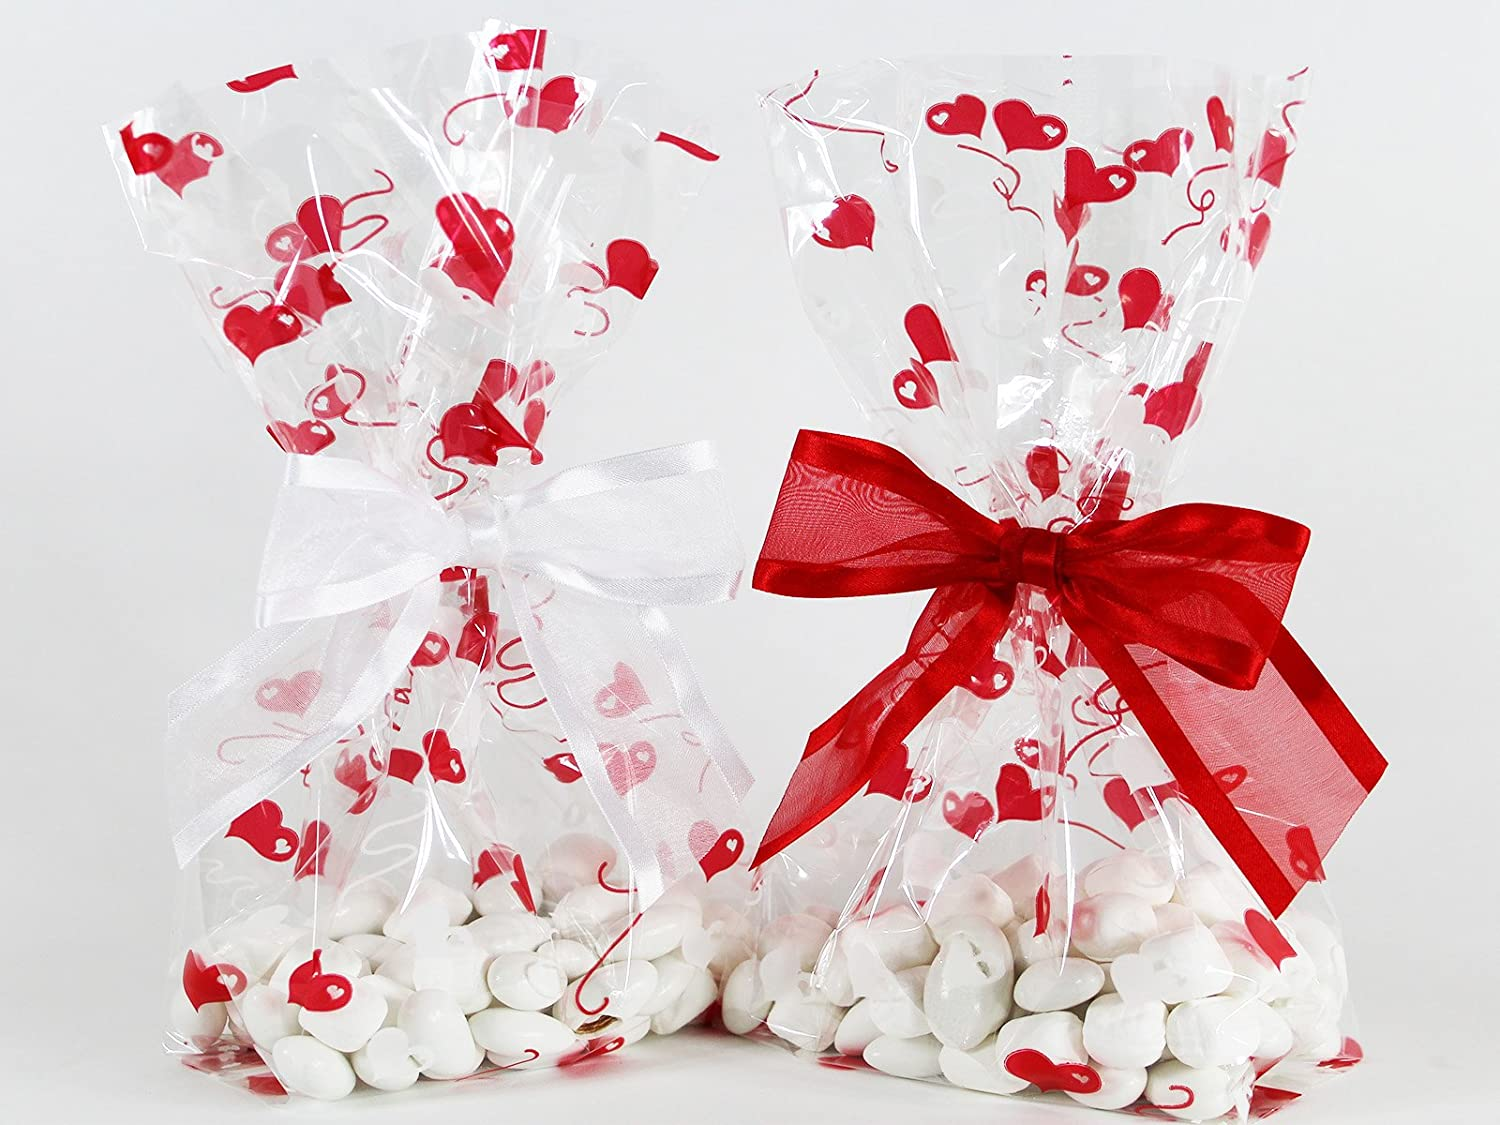 Valentine Hearts Cellophane Treat/Party Favor Bags with Red & White Twist-Tie Organza Bow. Set of 10 Ready-to-Use, Gussetted 11x5x3 Goodie Bags with Bows. Red, White